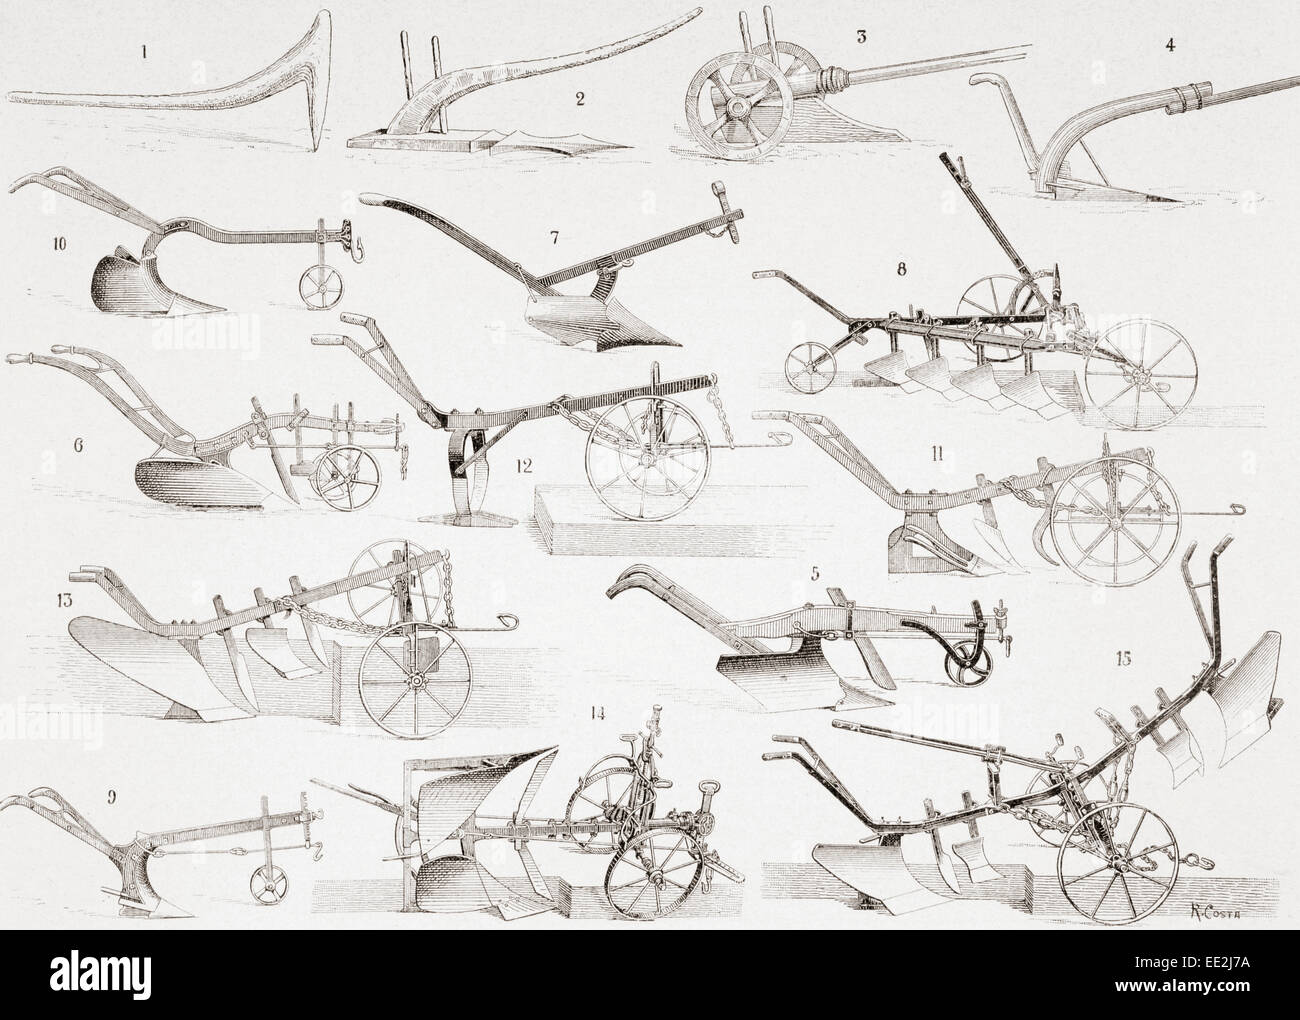 Evolution of the plough from the most primitive up to the first decade of the 20th century. - Stock Image